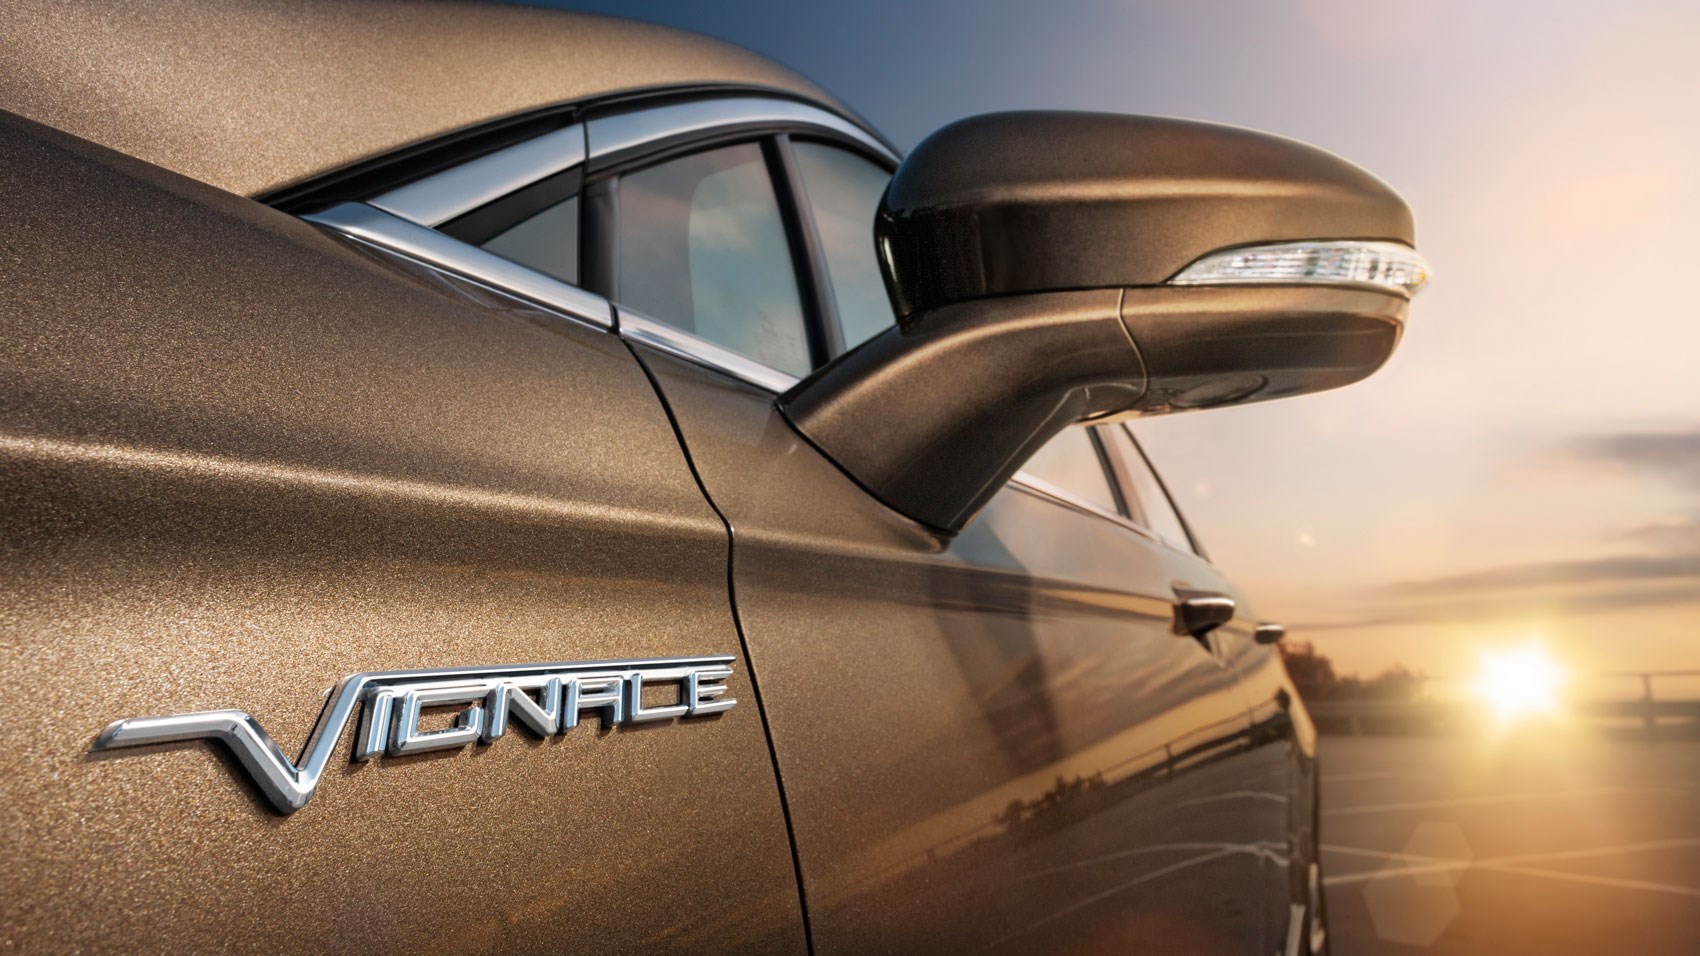 Ford Mondeo Vignale 2 0 Tdci Awd Powershift 2015 Review